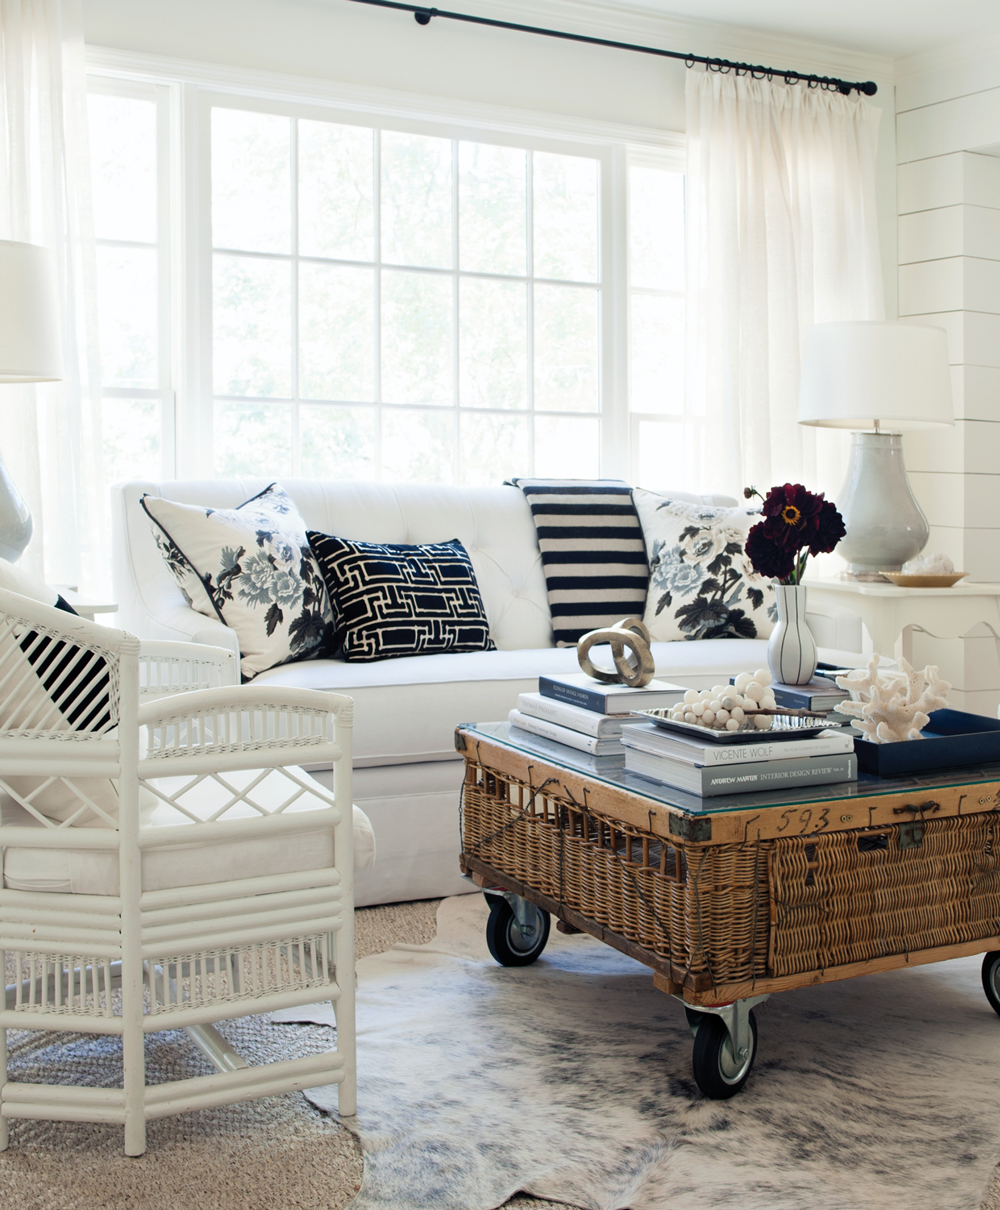 Not Just Another Home Decor Site: Interior Designer And Blogger Sherry Hart Takes Decorating